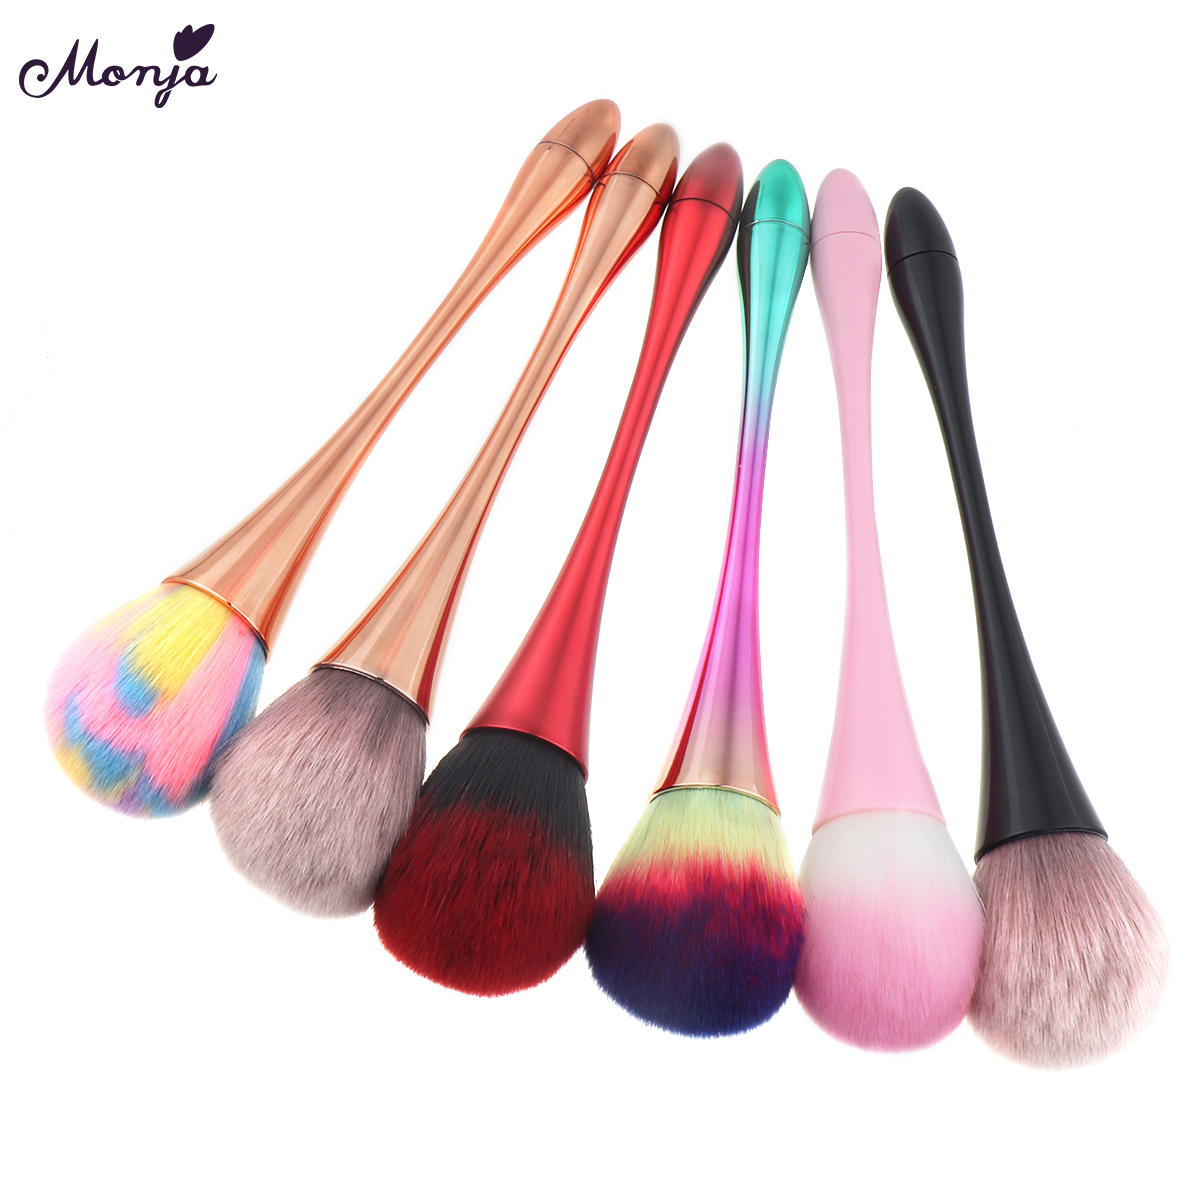 Monja Aluminum Handle Nail Soft Dust Cleaner Cleaning Brush Acrylic UV Gel Powder Removal Manicure Tool